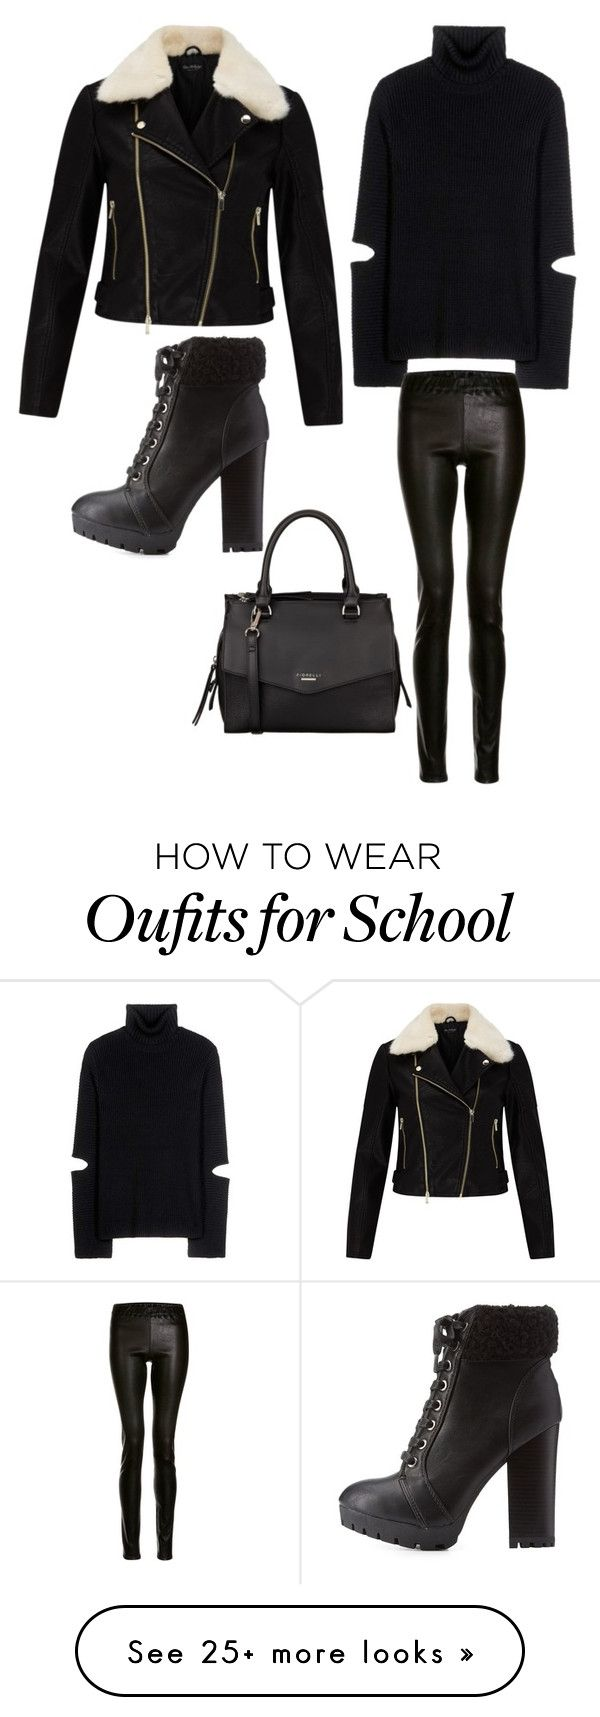 """Untitled #199"" by mirjasyvaluoma on Polyvore featuring Public School, Miss Selfridge, ElleSD, Bamboo and Fiorelli"